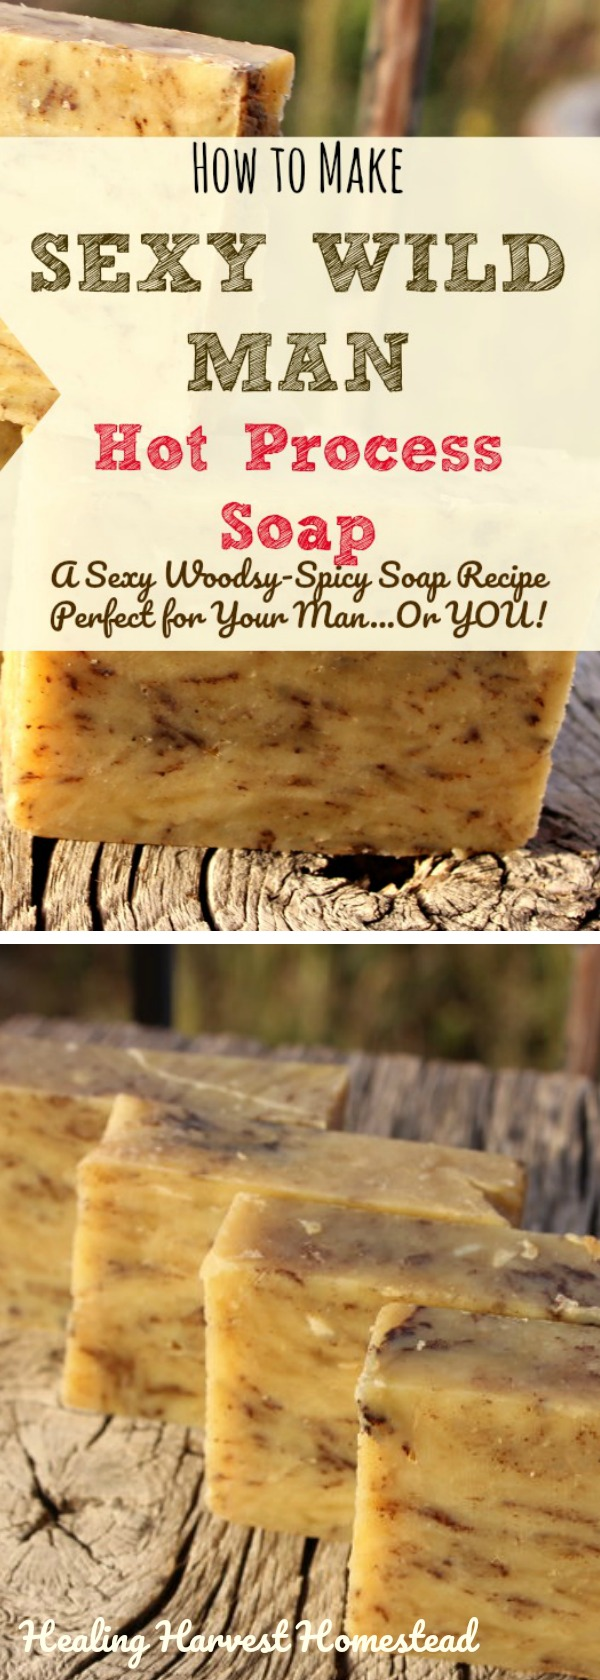 I've been making my Sexy Wild Man Hot Process soap recipe for a very long time because it's a favorite of so many people! The name is just cute, but this soap packs a serious aromatherapy punch! The Cedarwood calms and motivates, the cinnamon is warming and spicy, and the lemongrass uplifts your soul! You'll love this natural handmade manly soap recipe! #soap #hotprocess #meltandpour #manly #formen #natural #easy #herbal #healingharvesthomestead